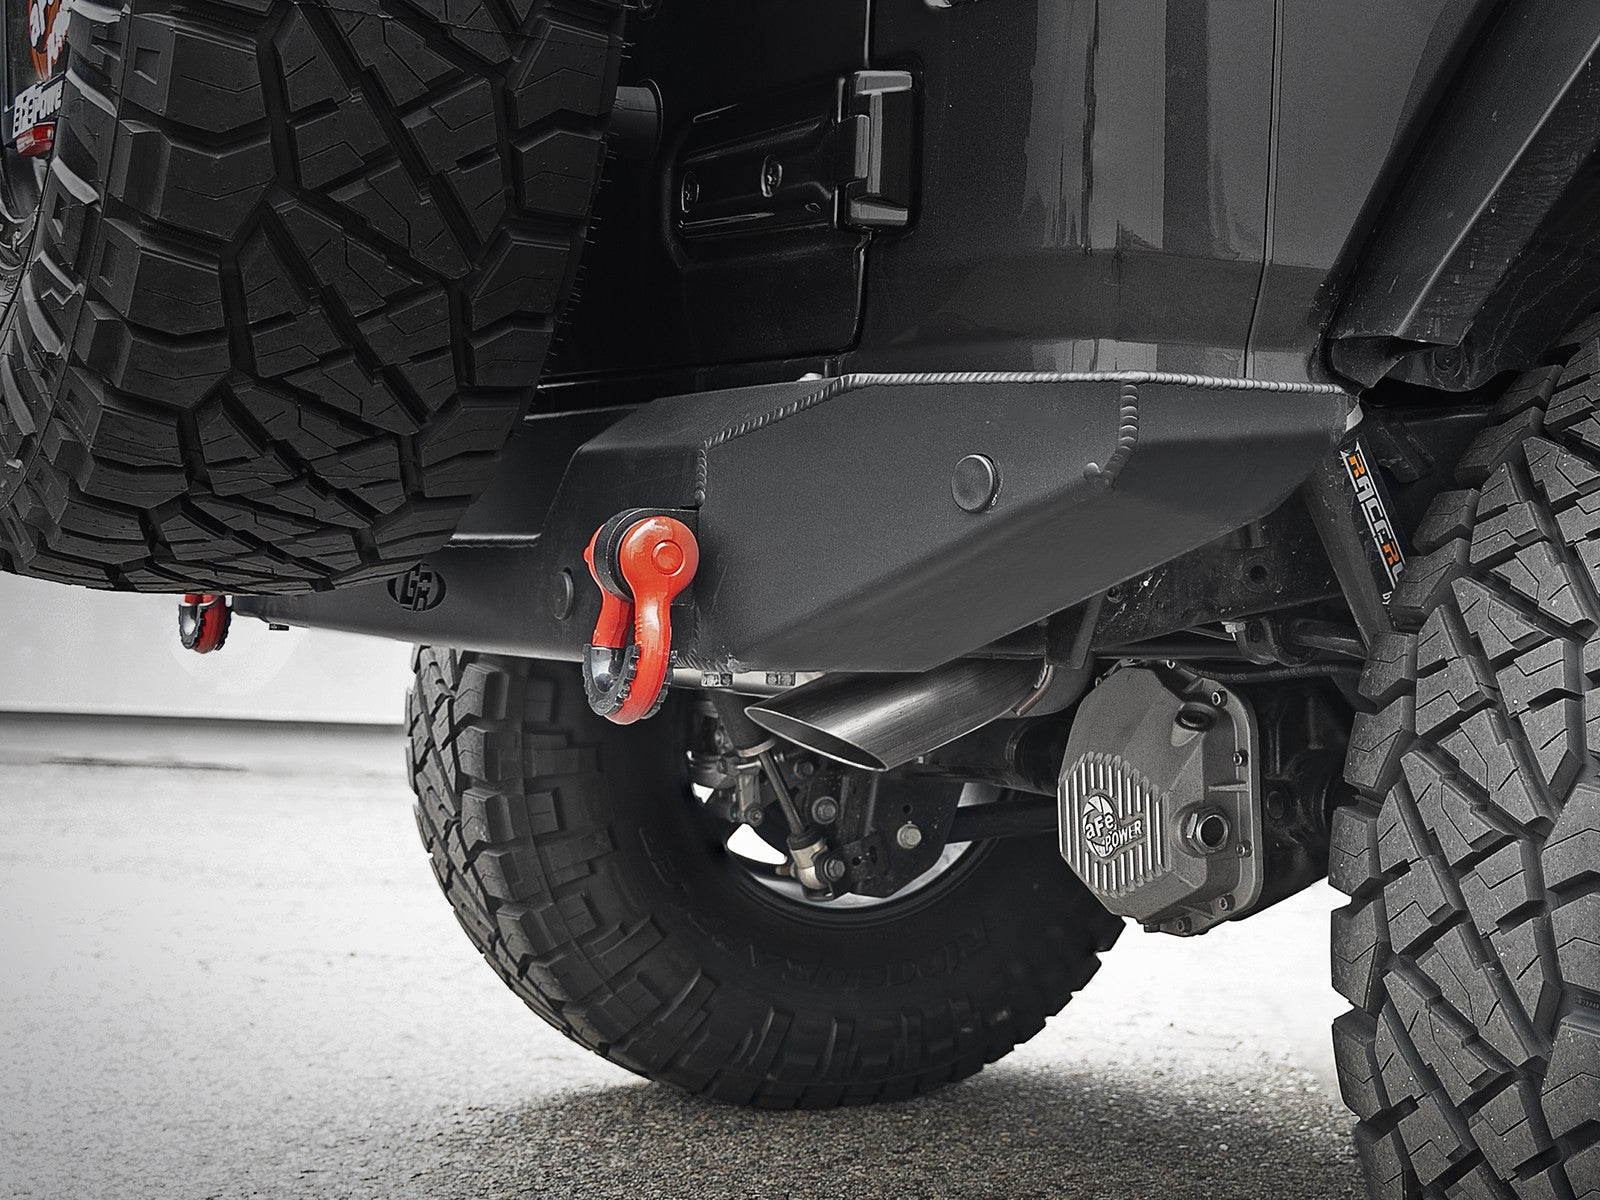 "AFE MACH Force-Xp Hi-Tuck 3"" 409 Stainless Steel Axle-Back Exhaust System for Jeep Wrangler JL/JLU"